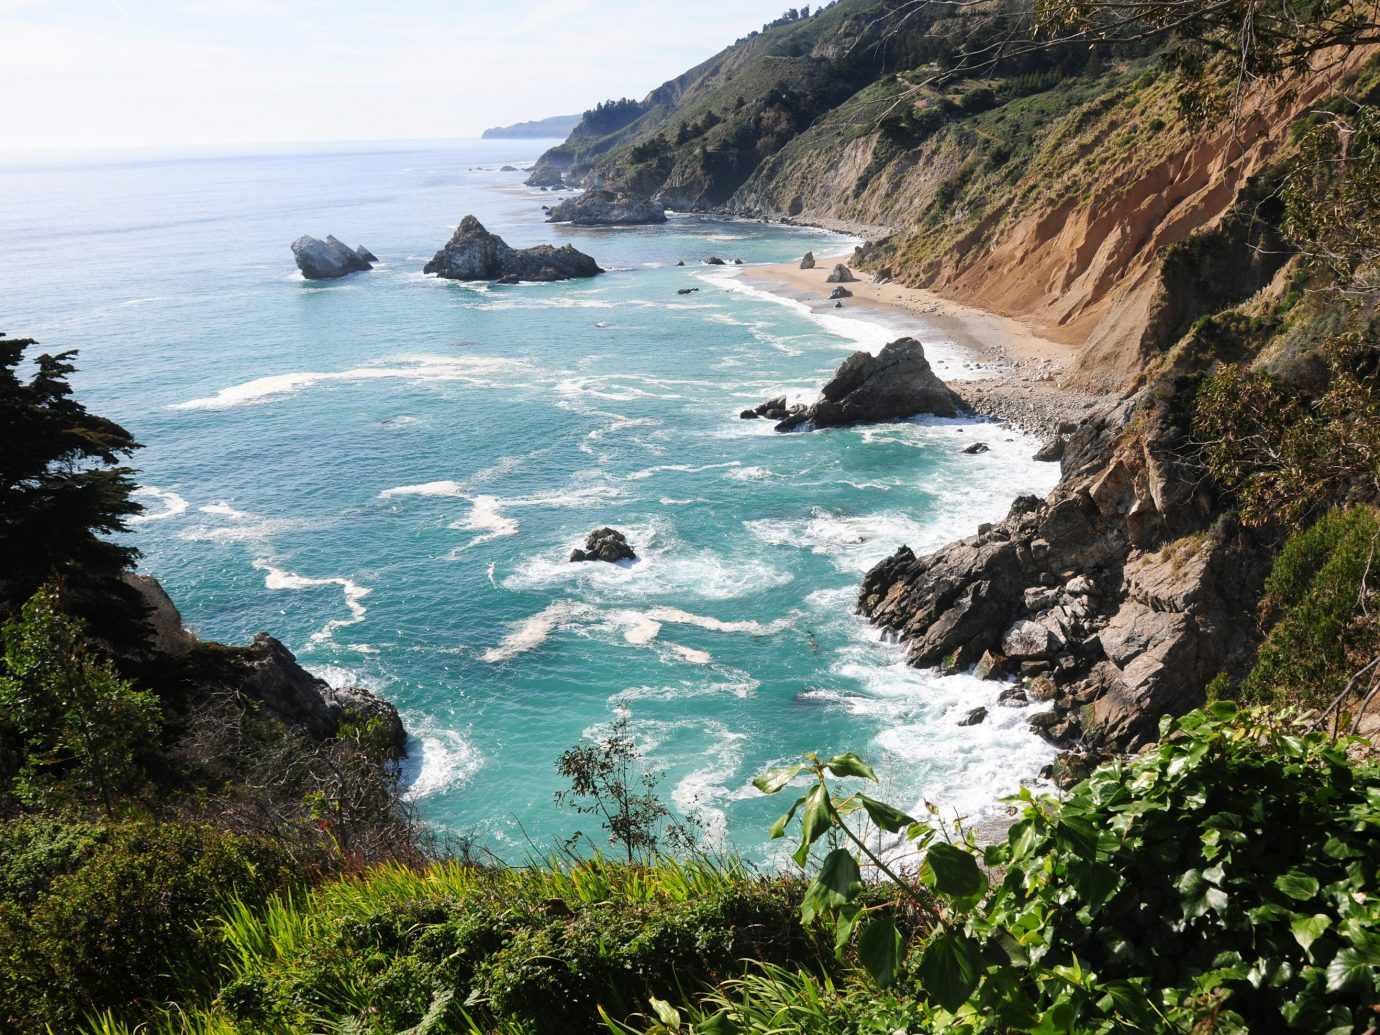 Solo Travel Trip Ideas outdoor water Nature Coast rock landform geographical feature mountain body of water Sea shore cliff Ocean bay Beach terrain cove cape fjord hillside surrounded Island